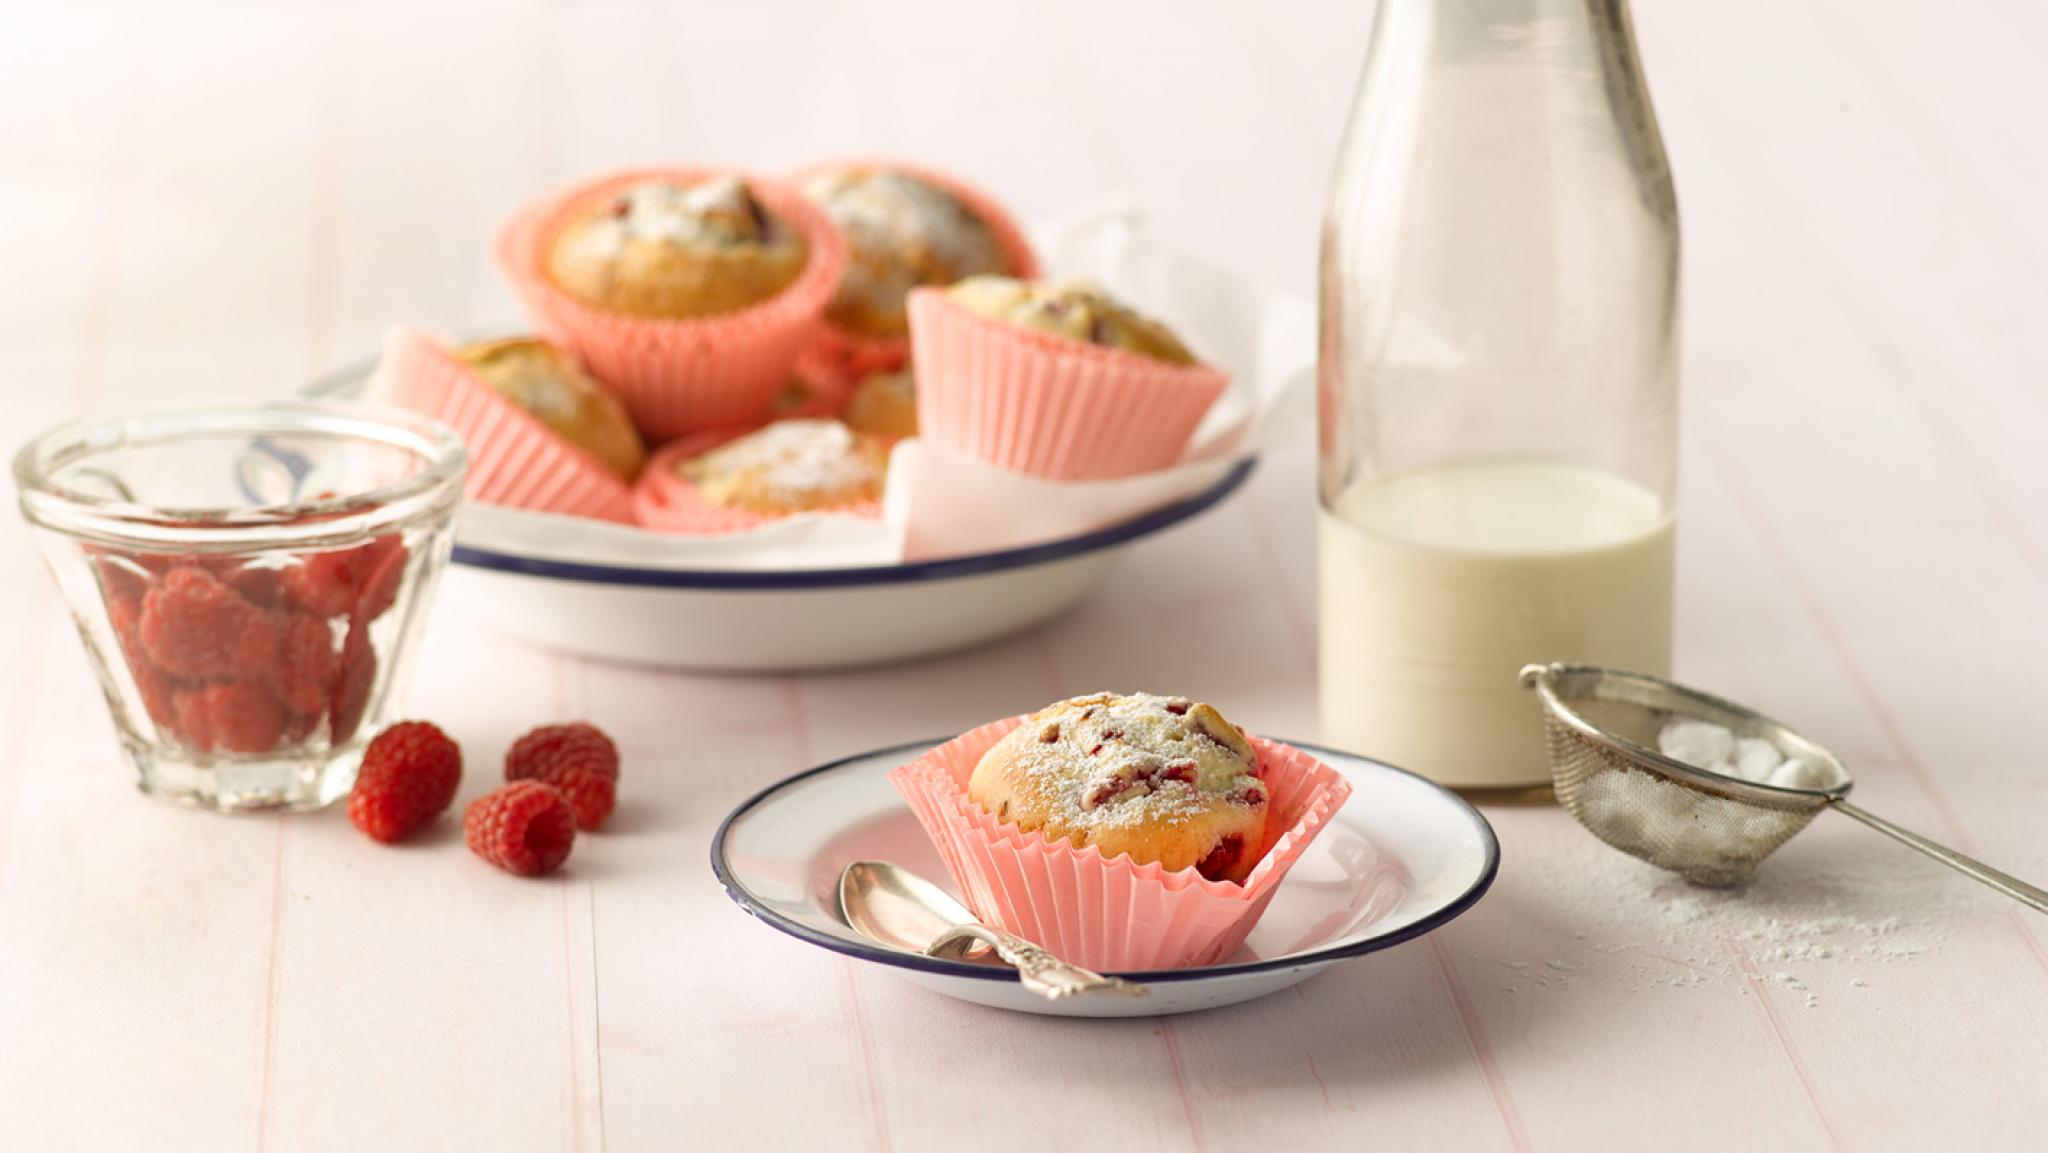 Ricotta-Himbeer-Muffins